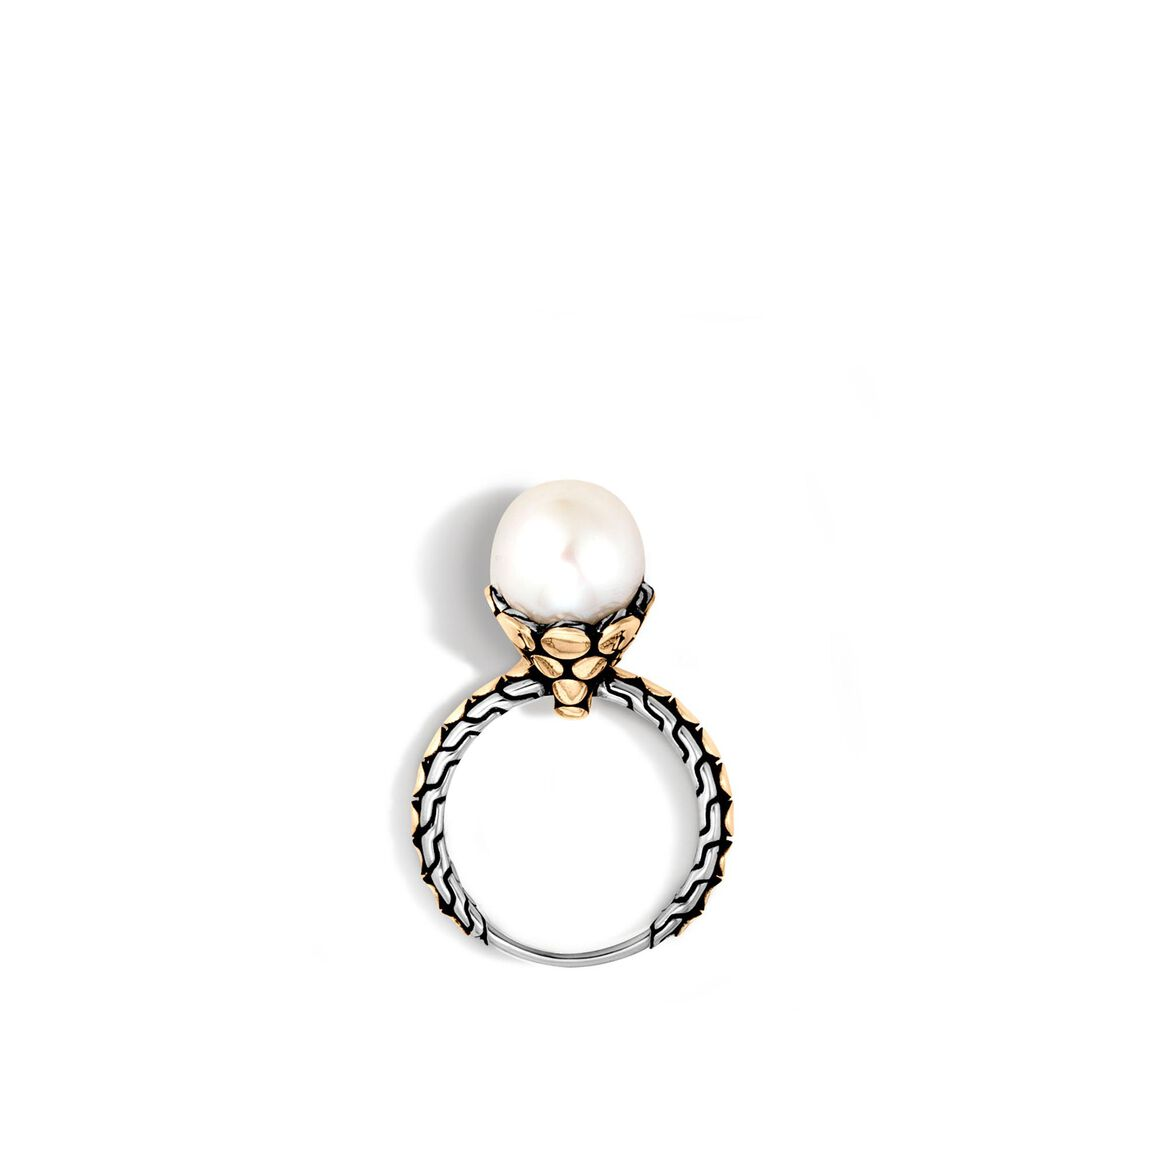 Dot Charm Ring in Silver and 18K Gold with 11MM Pearl